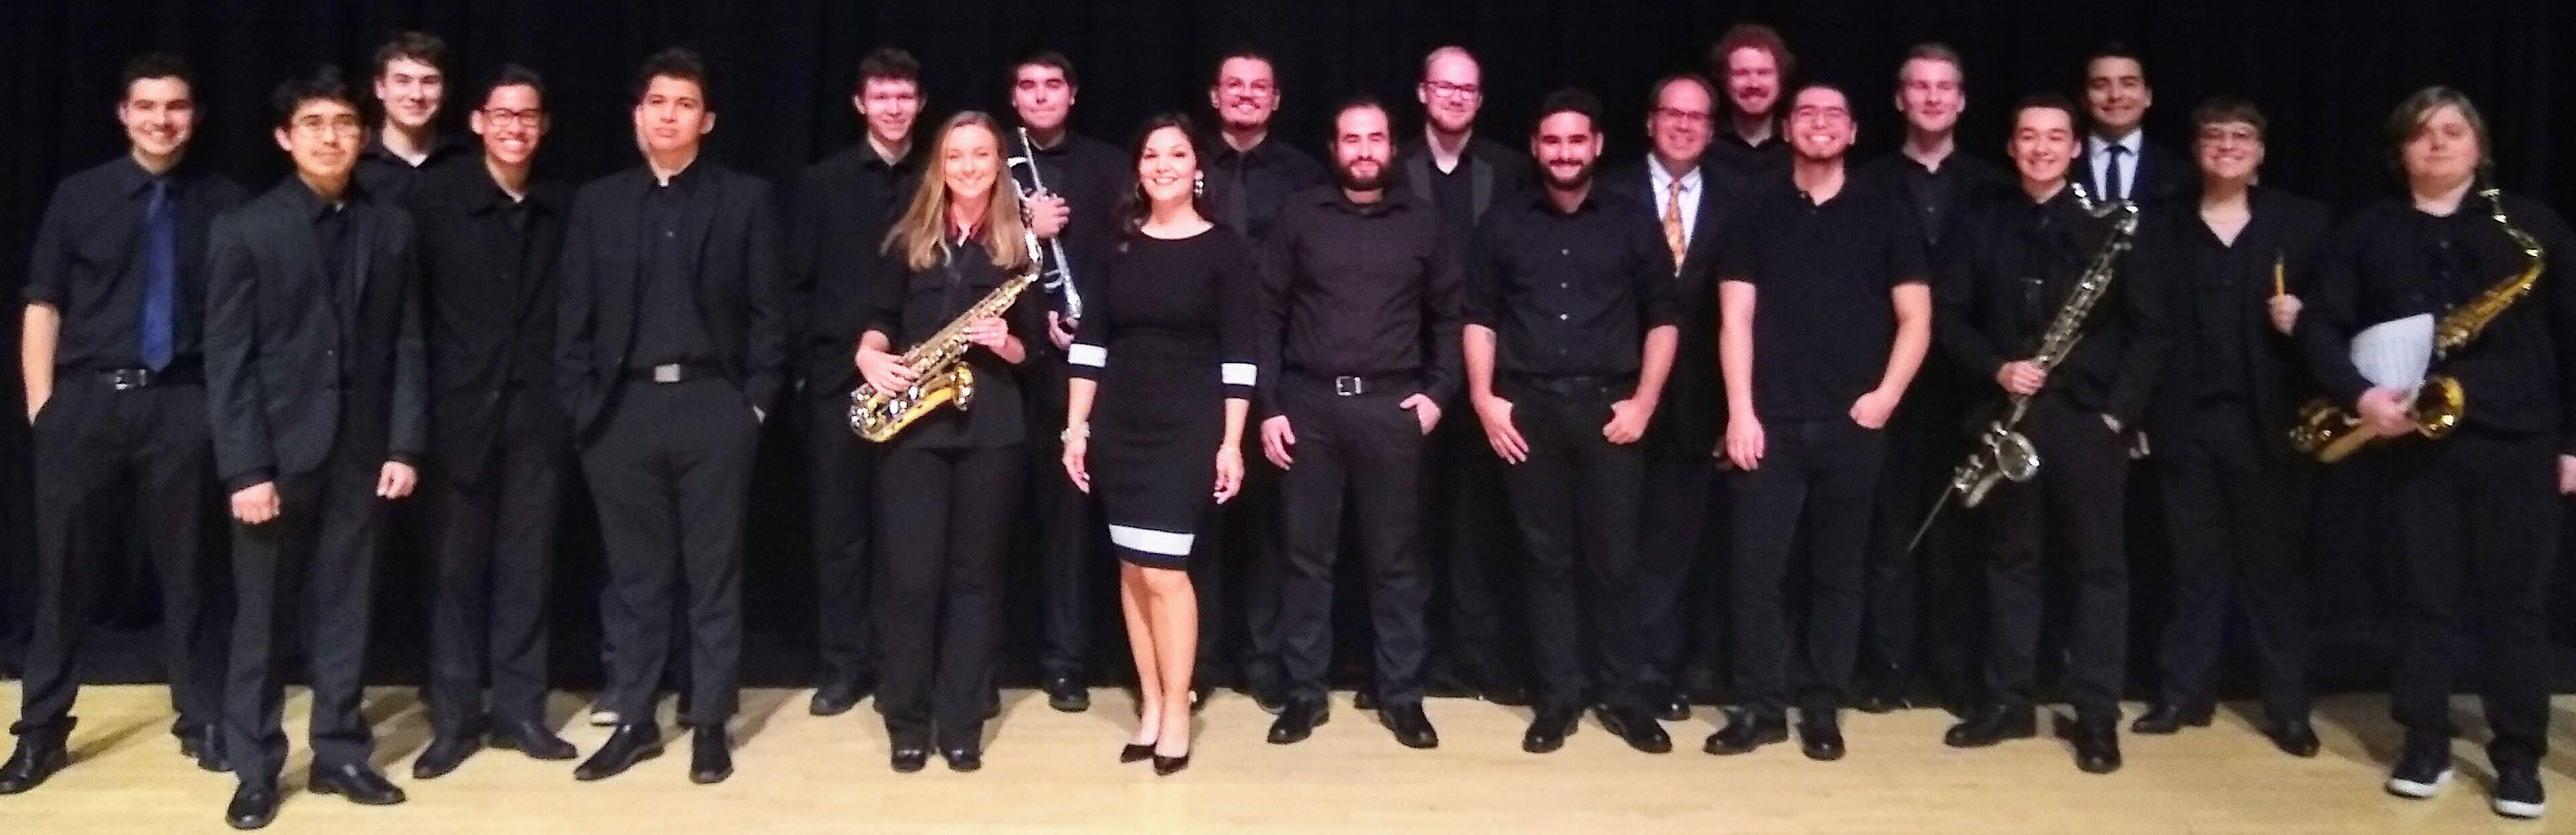 Jazz Band standing in a group and smiling